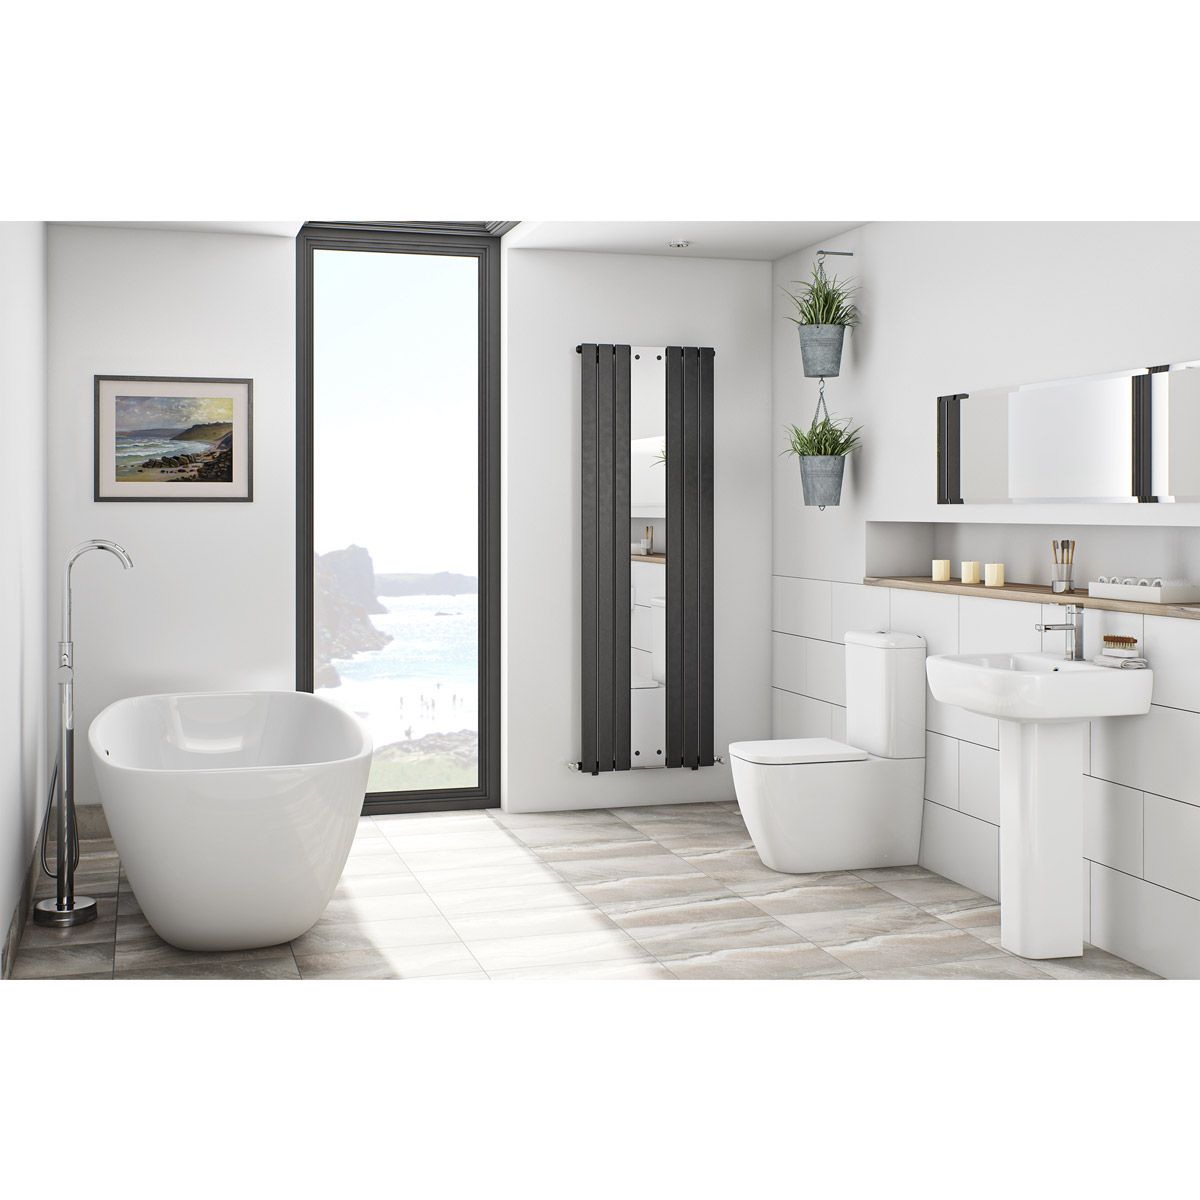 Click Here To Find Out More About On Trend, Designer Style Can Be Yours,  With This Stunning Freestanding Bath Suite From Mode Bathrooms.